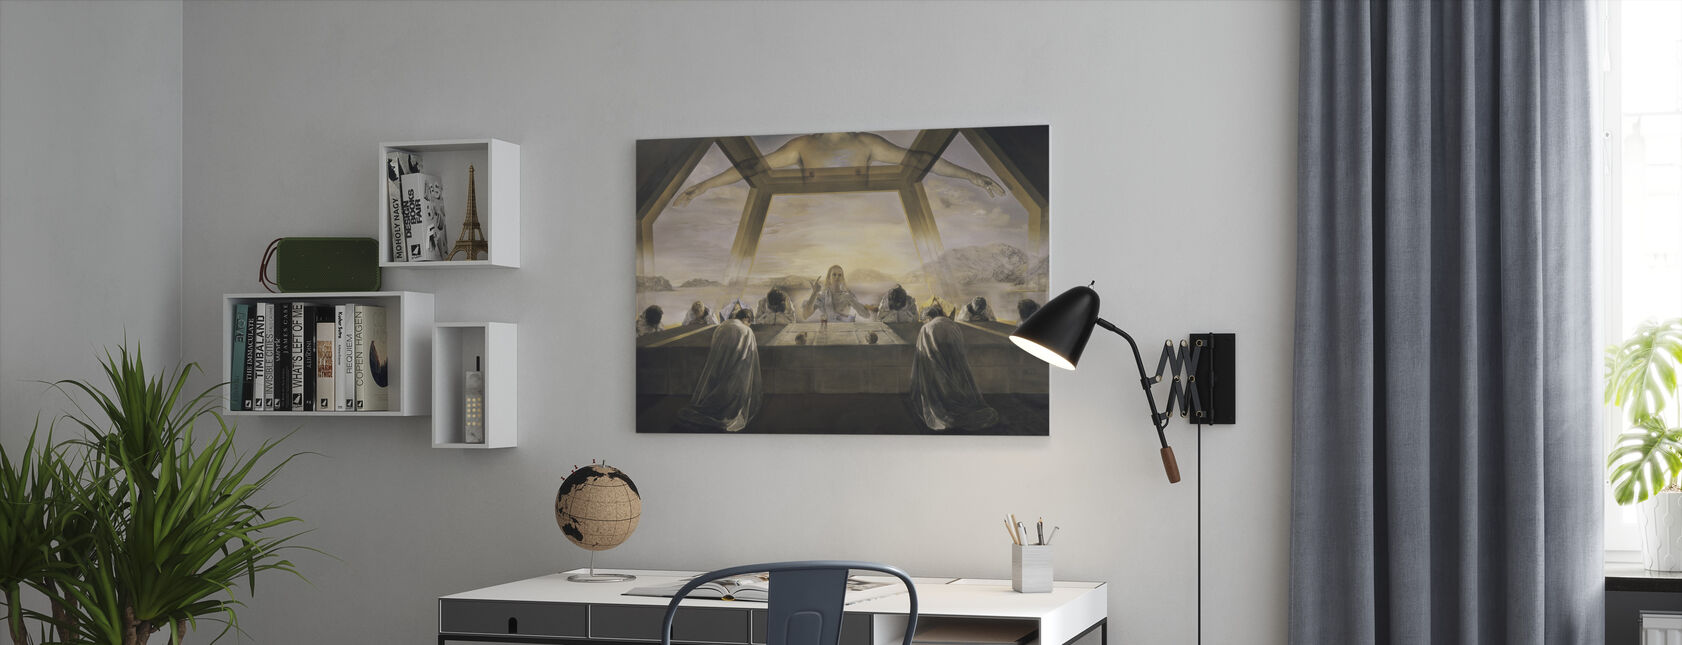 Sacrament of the Last Supper - Salvador Dali - Canvas print - Office